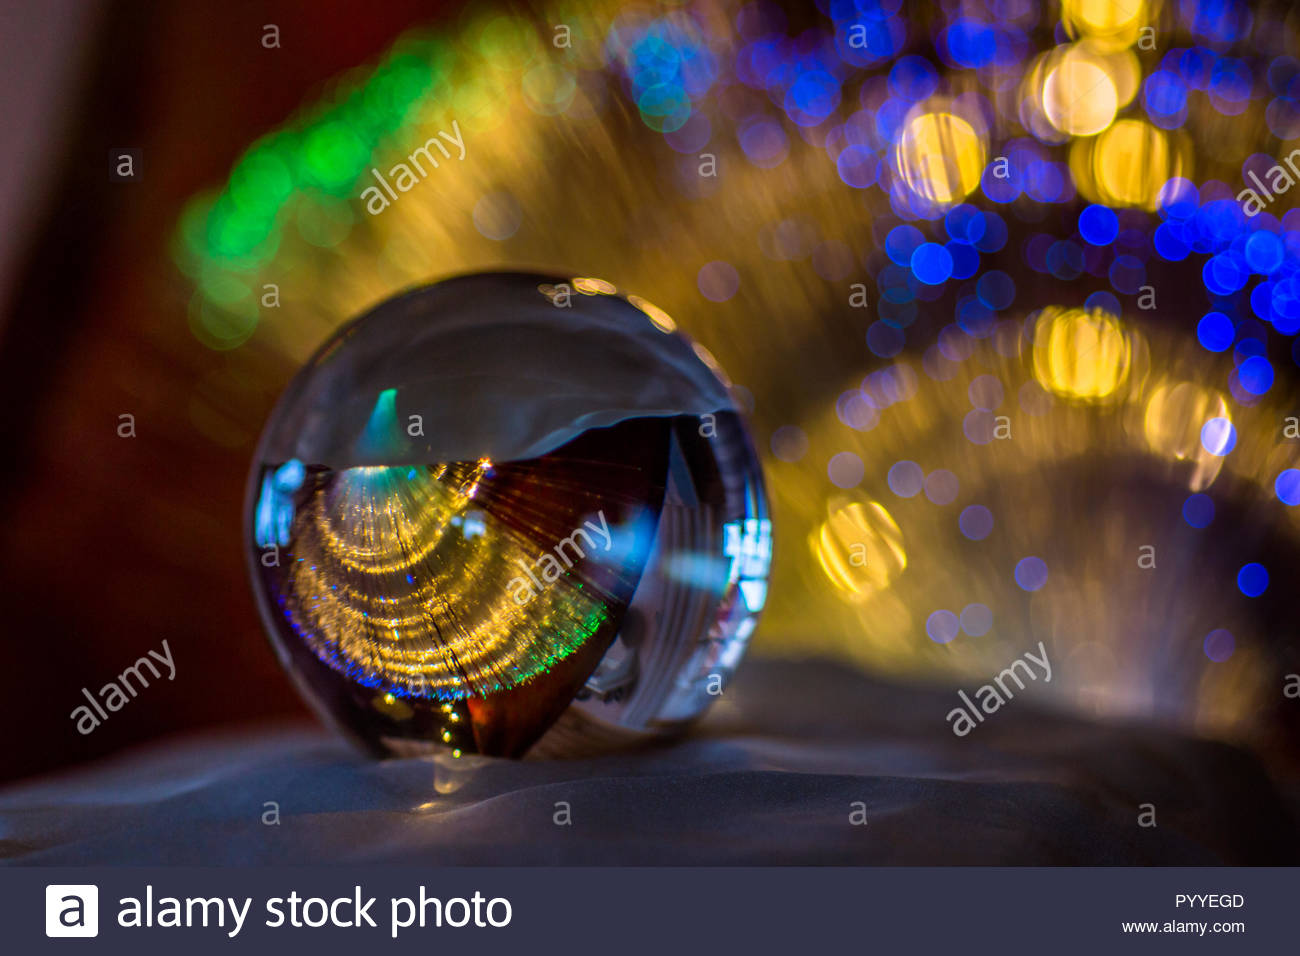 glas bowl with a colorful background - Stock Image